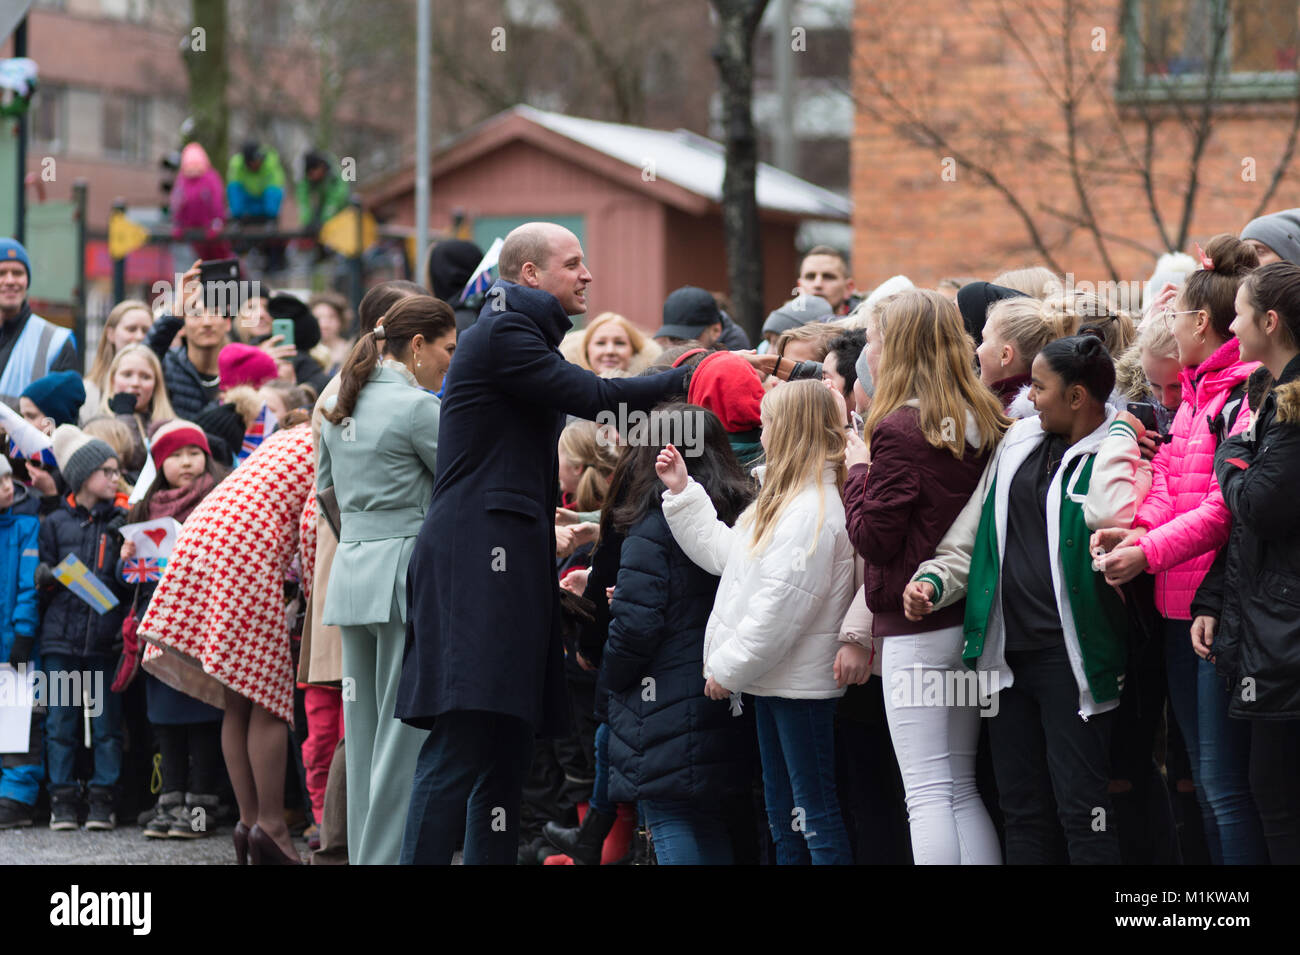 Stockholm, Sweden, 31th January, 2018. The Duke and Duchess of Cambridge's Tour of Sweden 30th-31th January,2018. - Stock Image